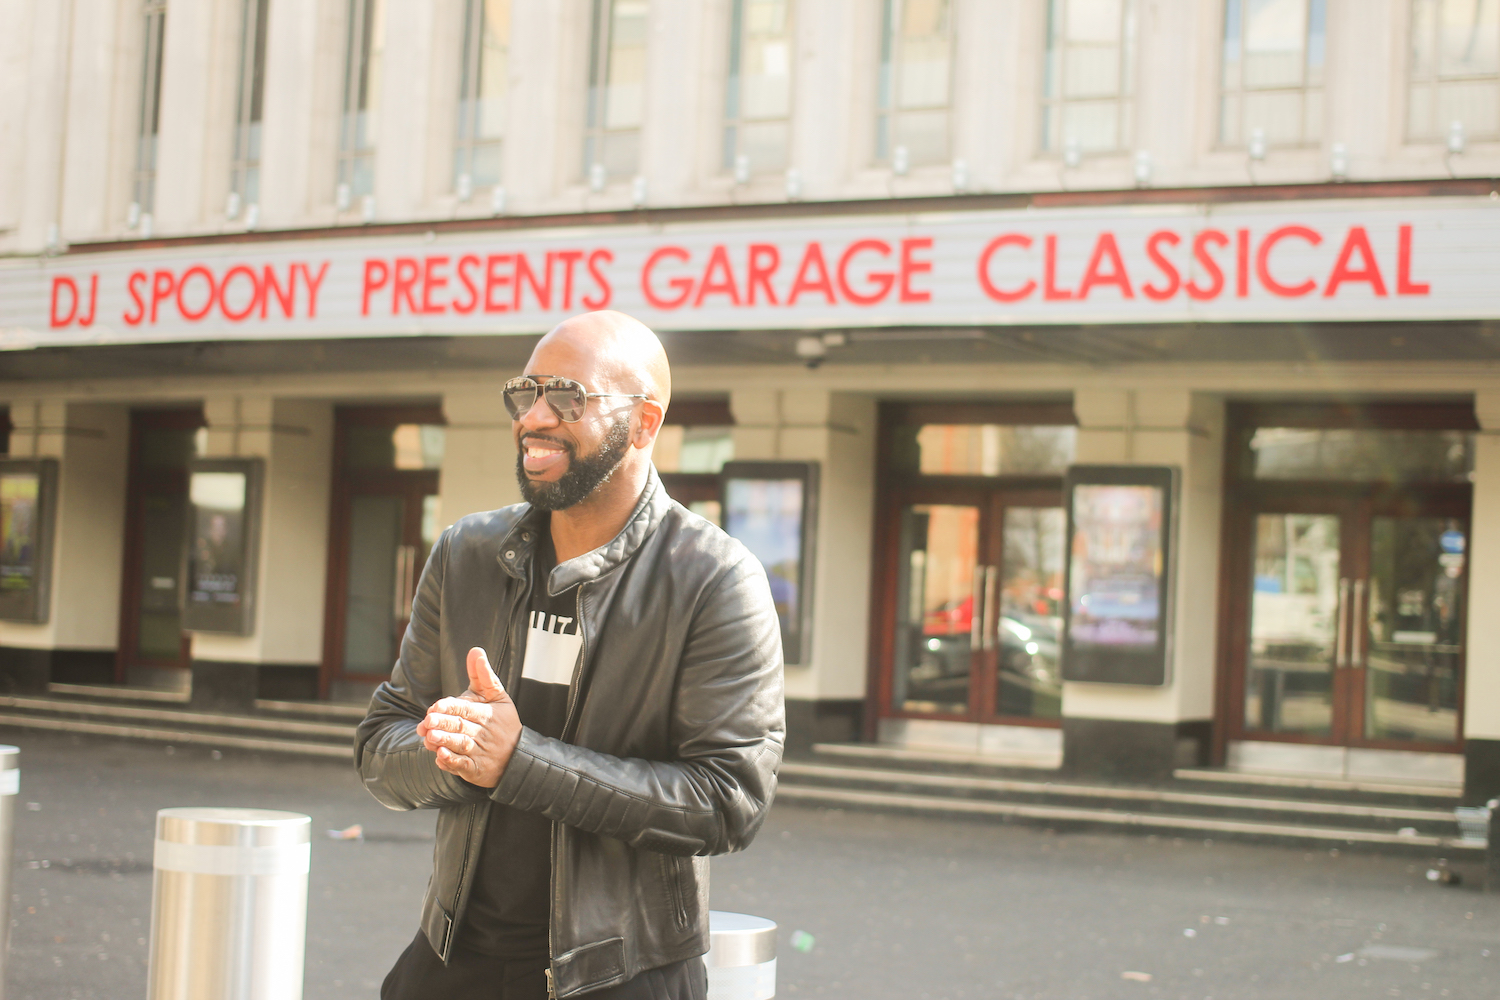 RE: DJ SPOONY PRESENTS GARAGE CLASSICAL // Marketing Assets